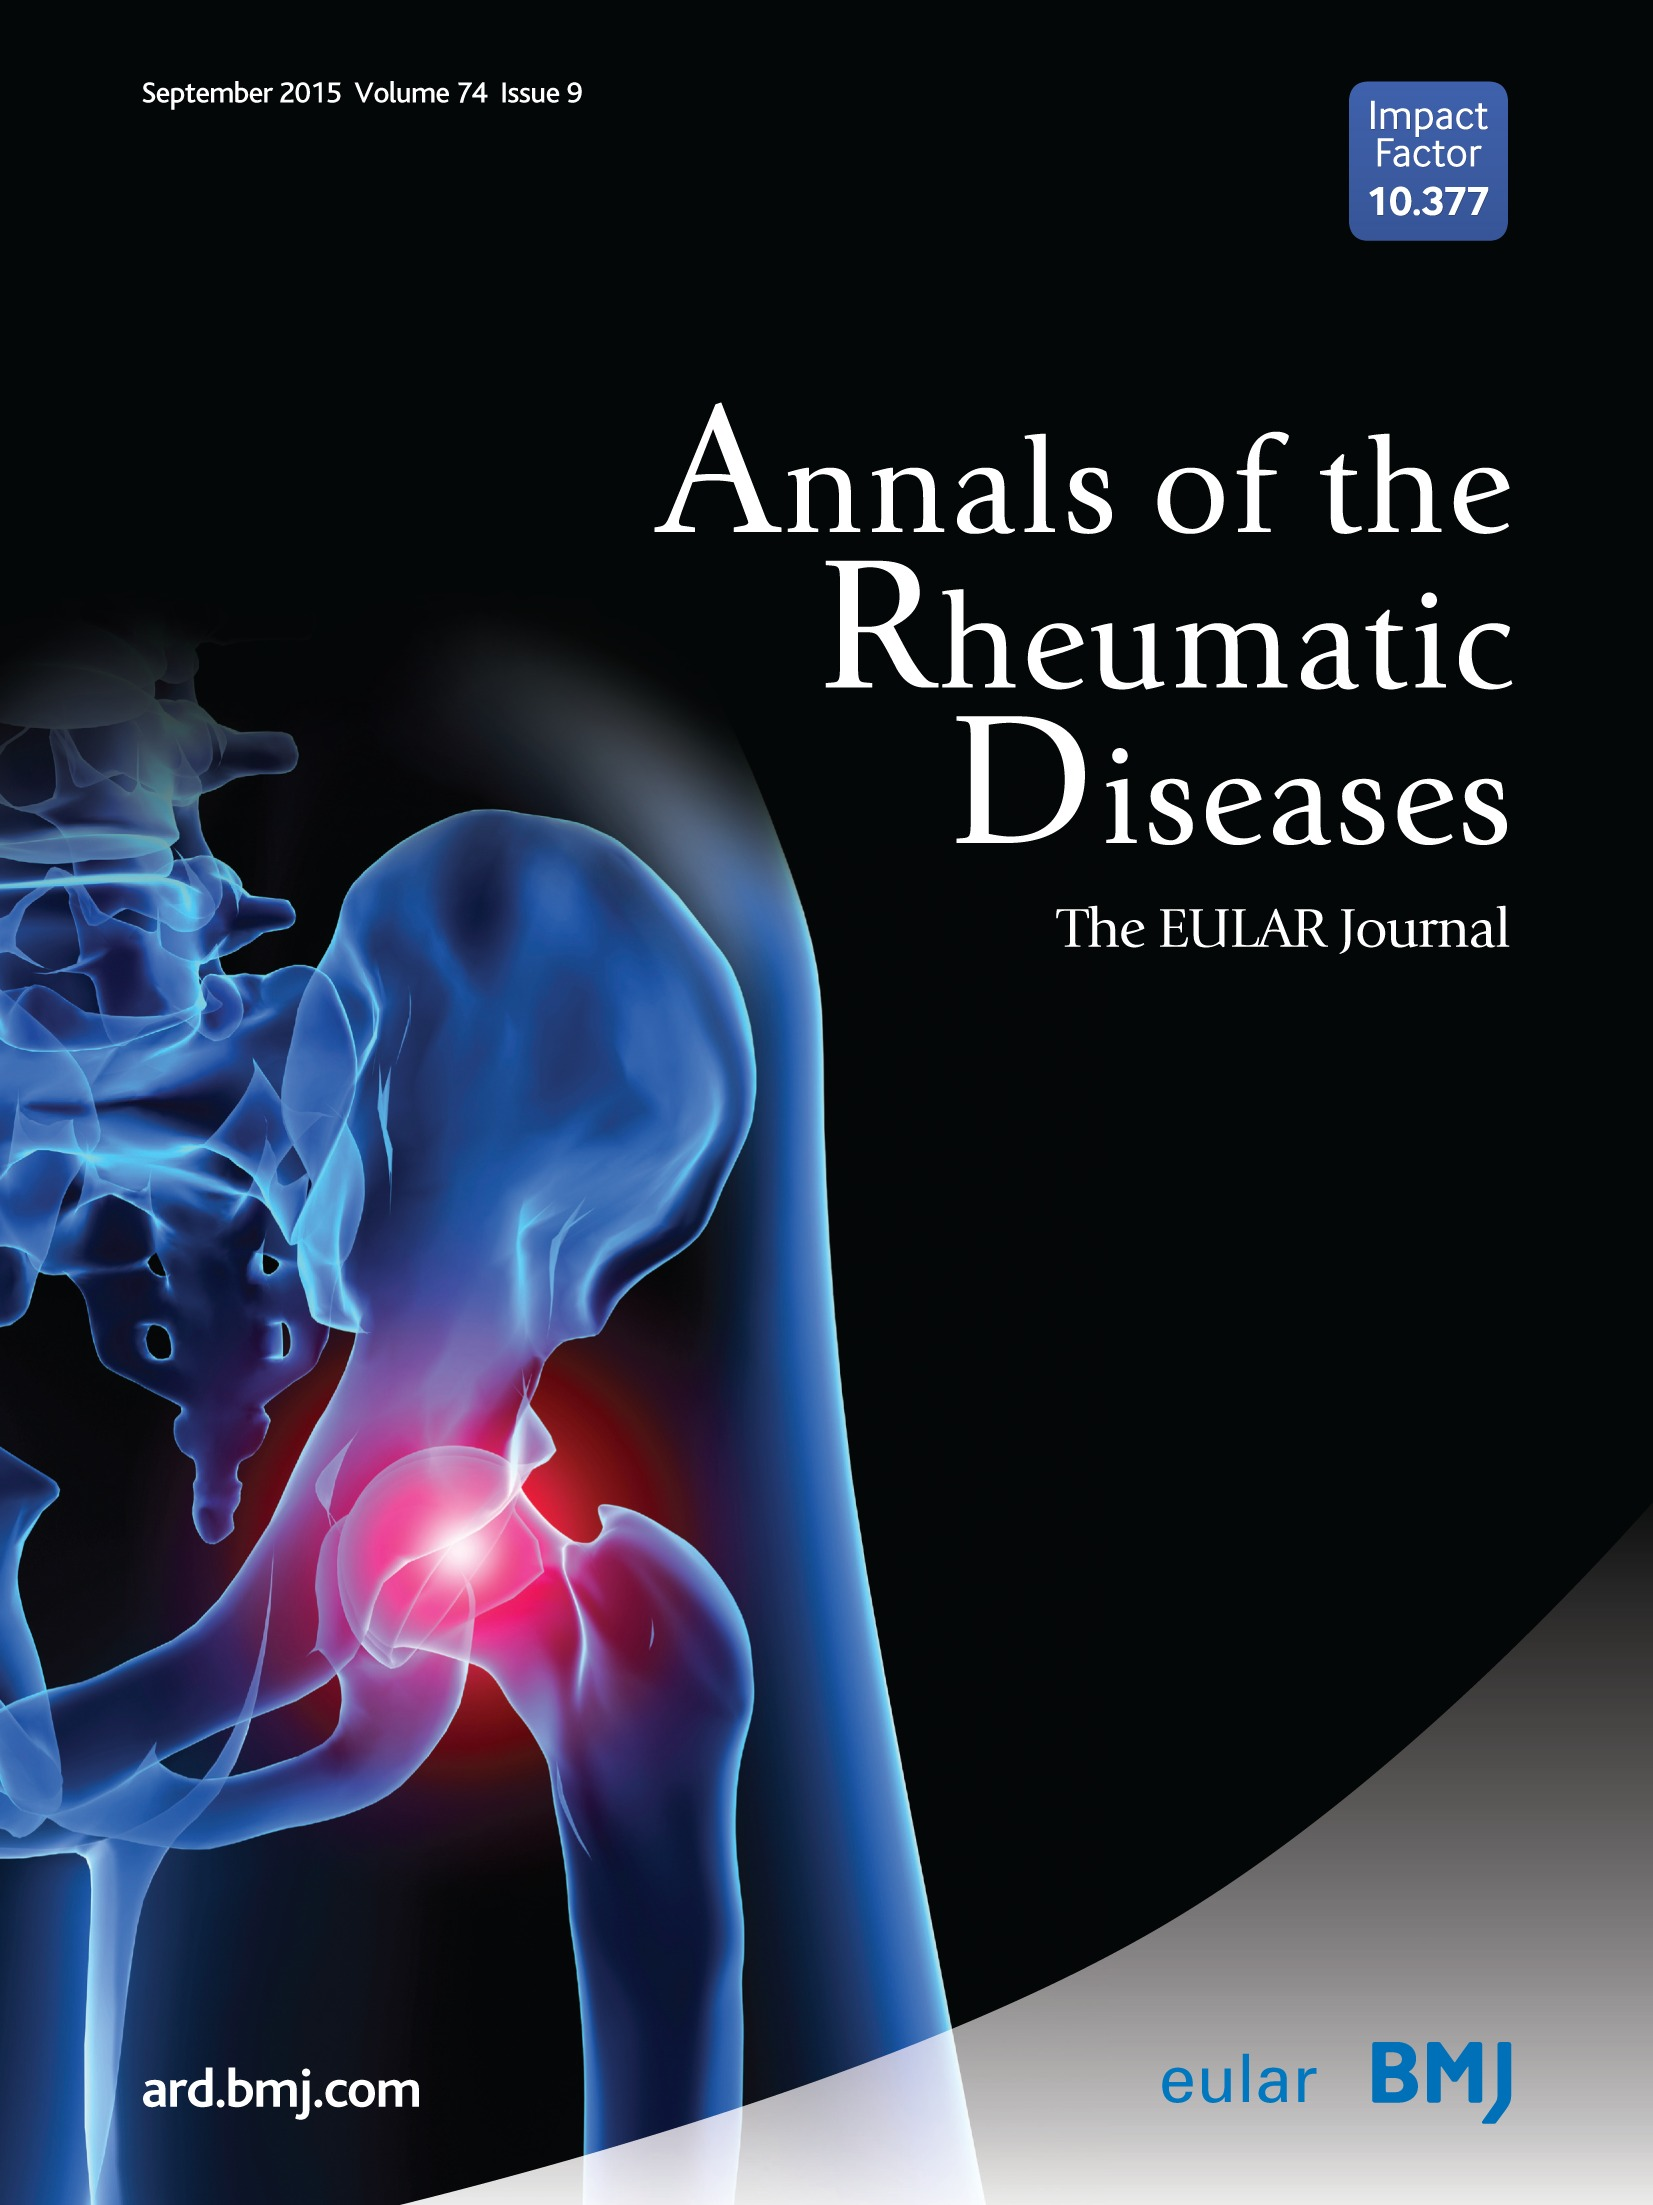 Rennes eval - Identification Of Patients With Gout Elaboration Of A Questionnaire For Epidemiological Studies Annals Of The Rheumatic Diseases